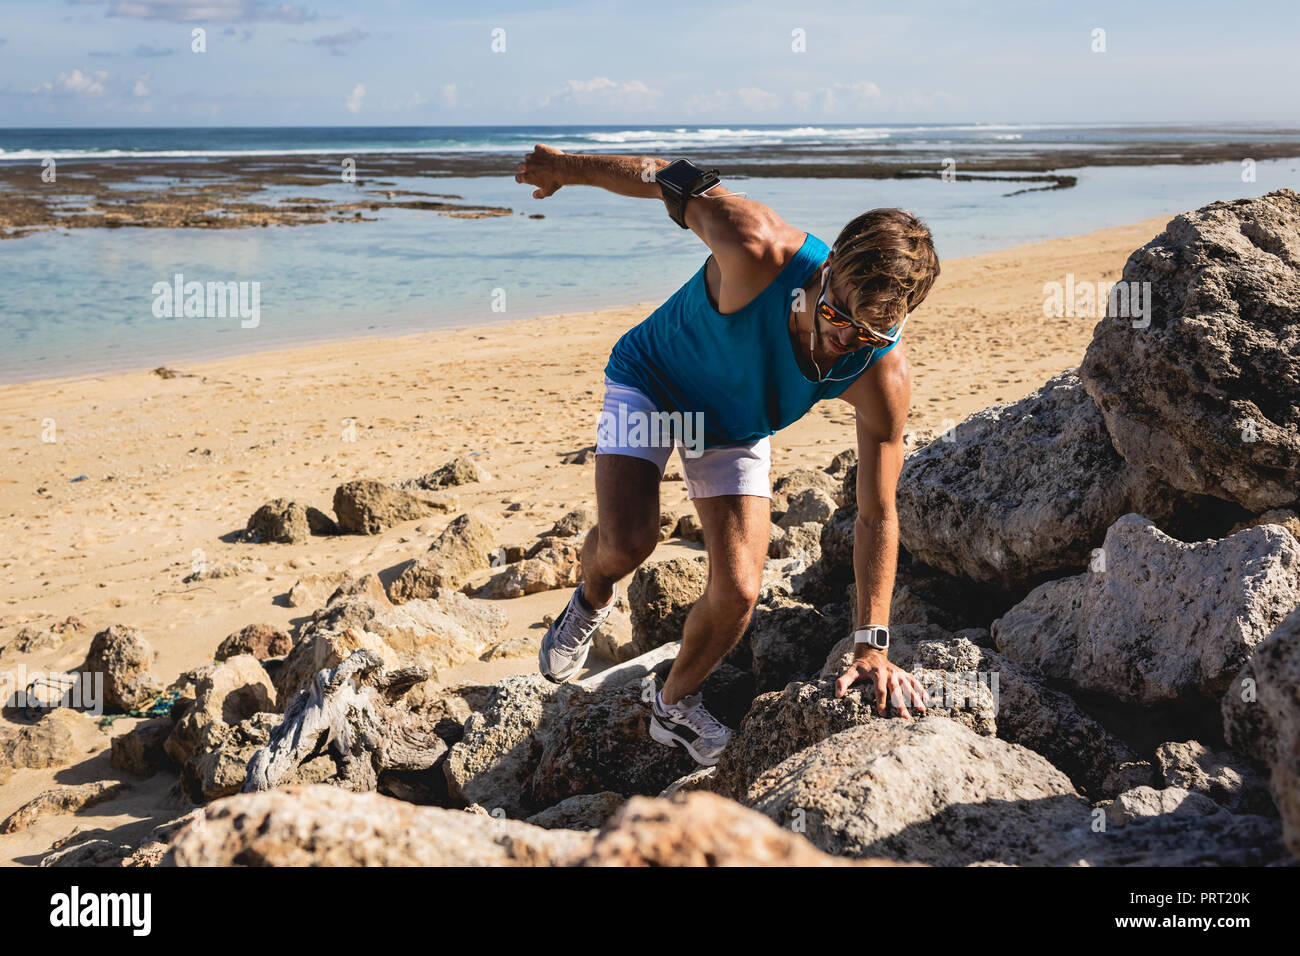 sportsman climbing on rocks on beach, Bali, Indonesia - Stock Image